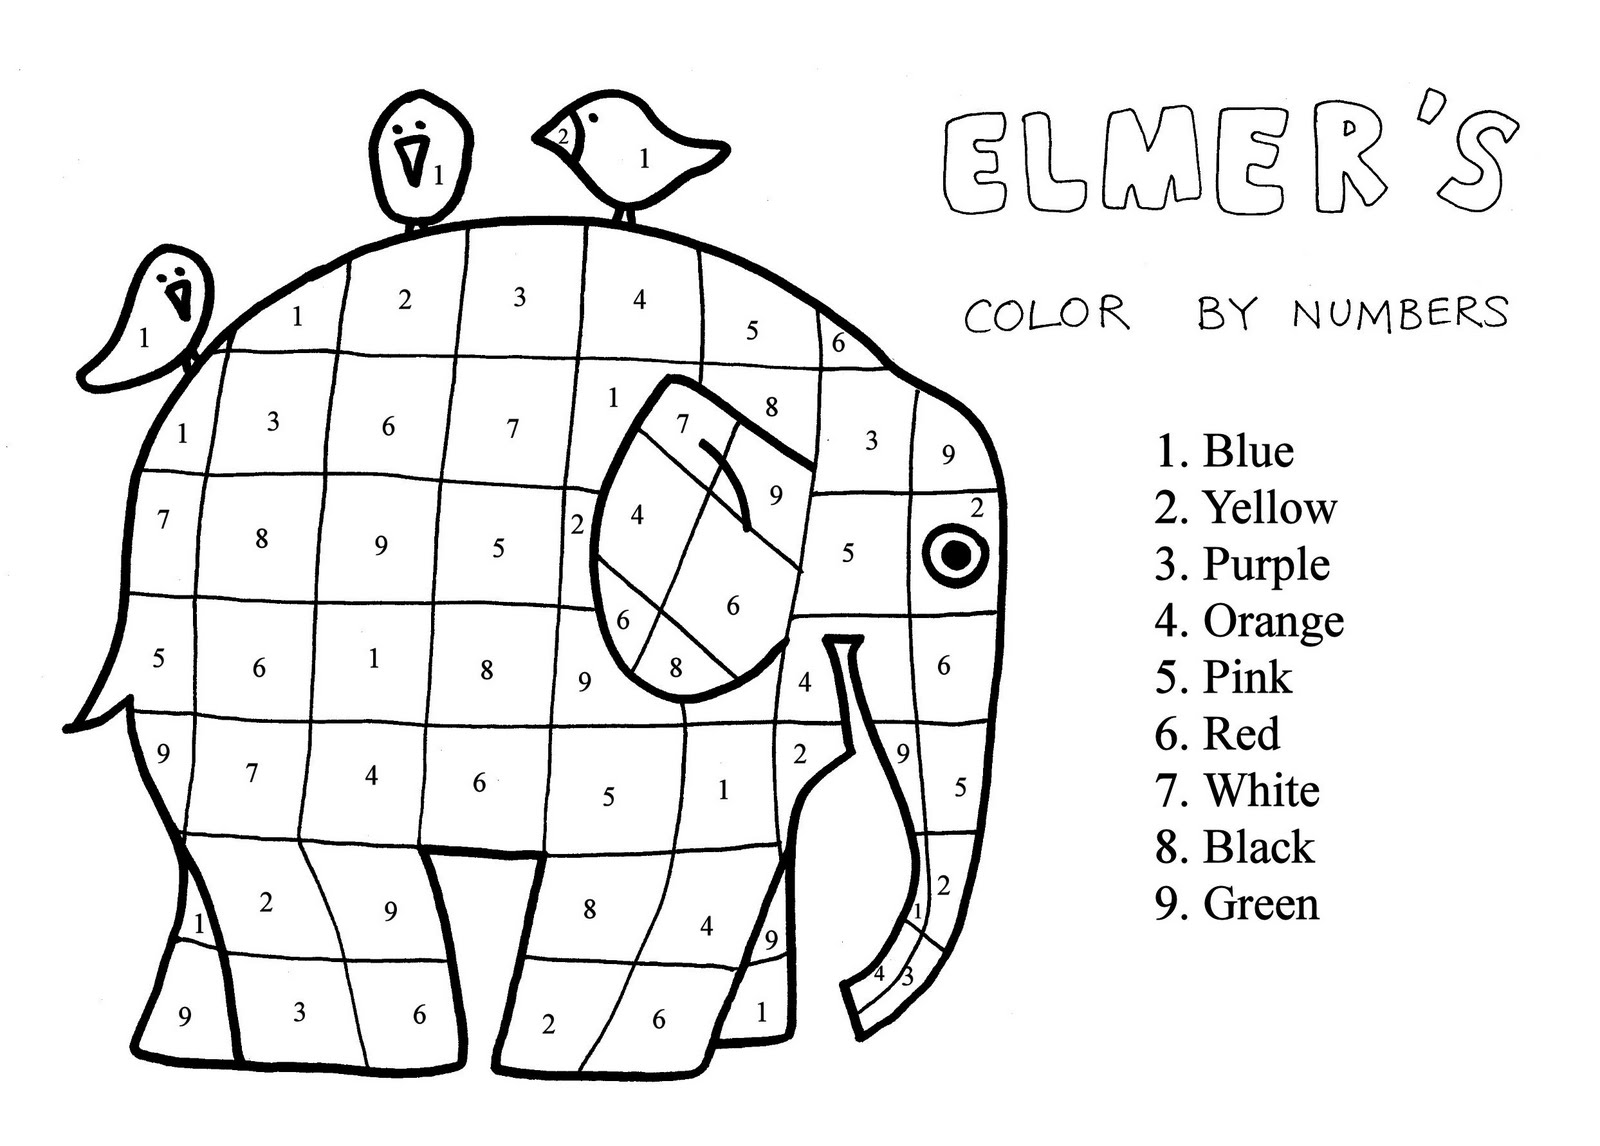 elmer the elephant coloring page elmer elephant coloring page elmer the elephants the elmer page coloring elephant